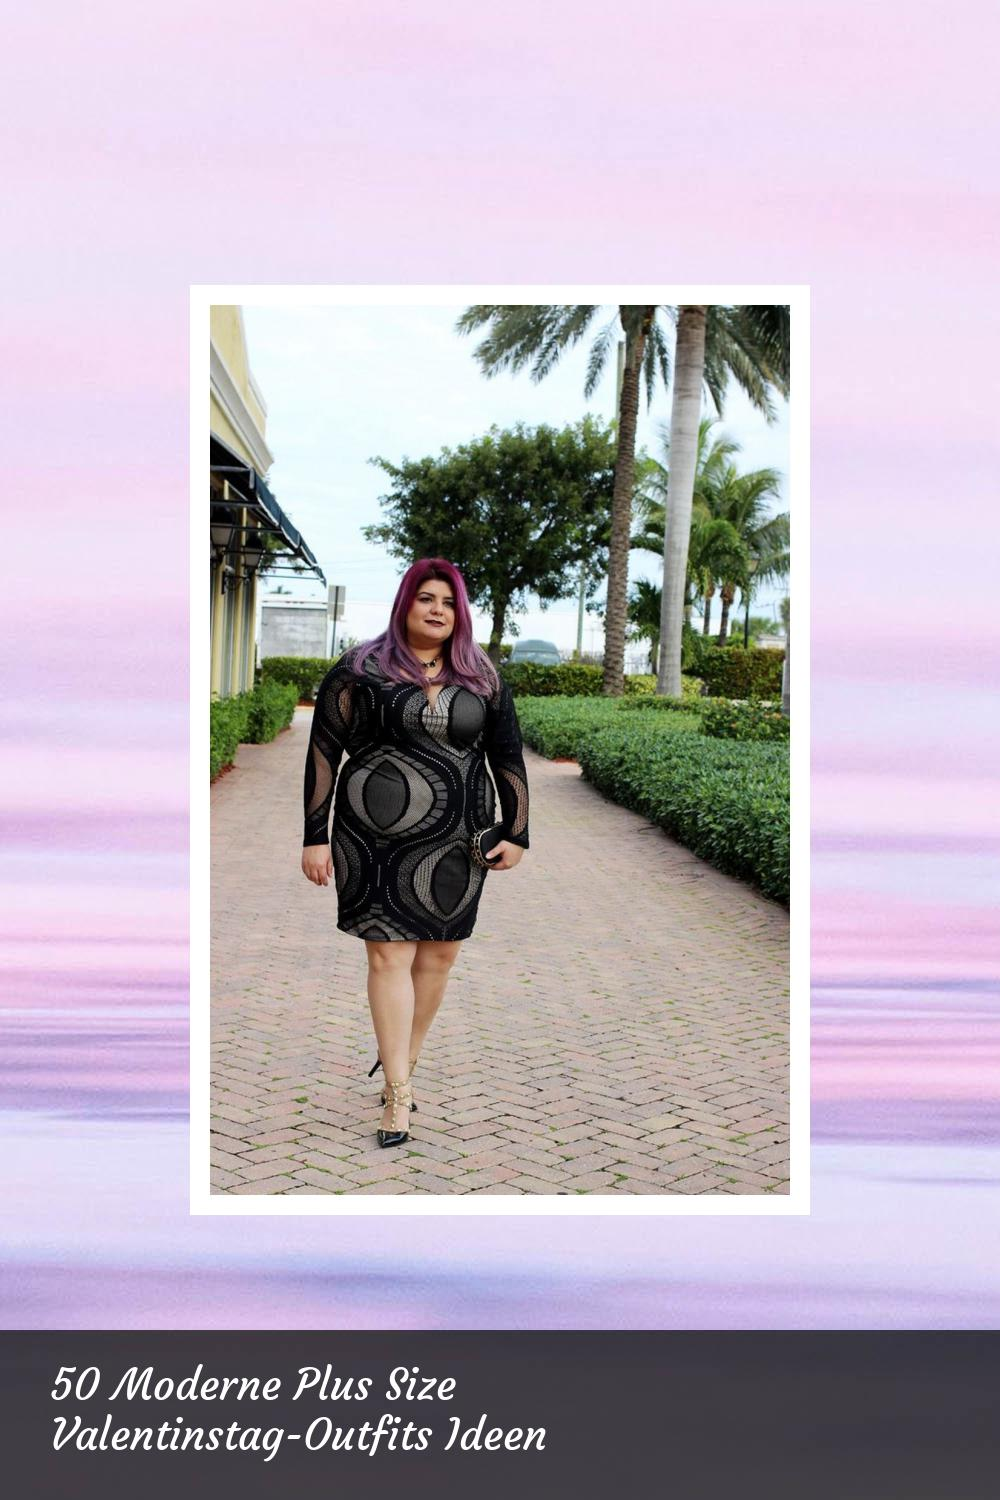 50 Moderne Plus Size Valentinstag-Outfits Ideen 13